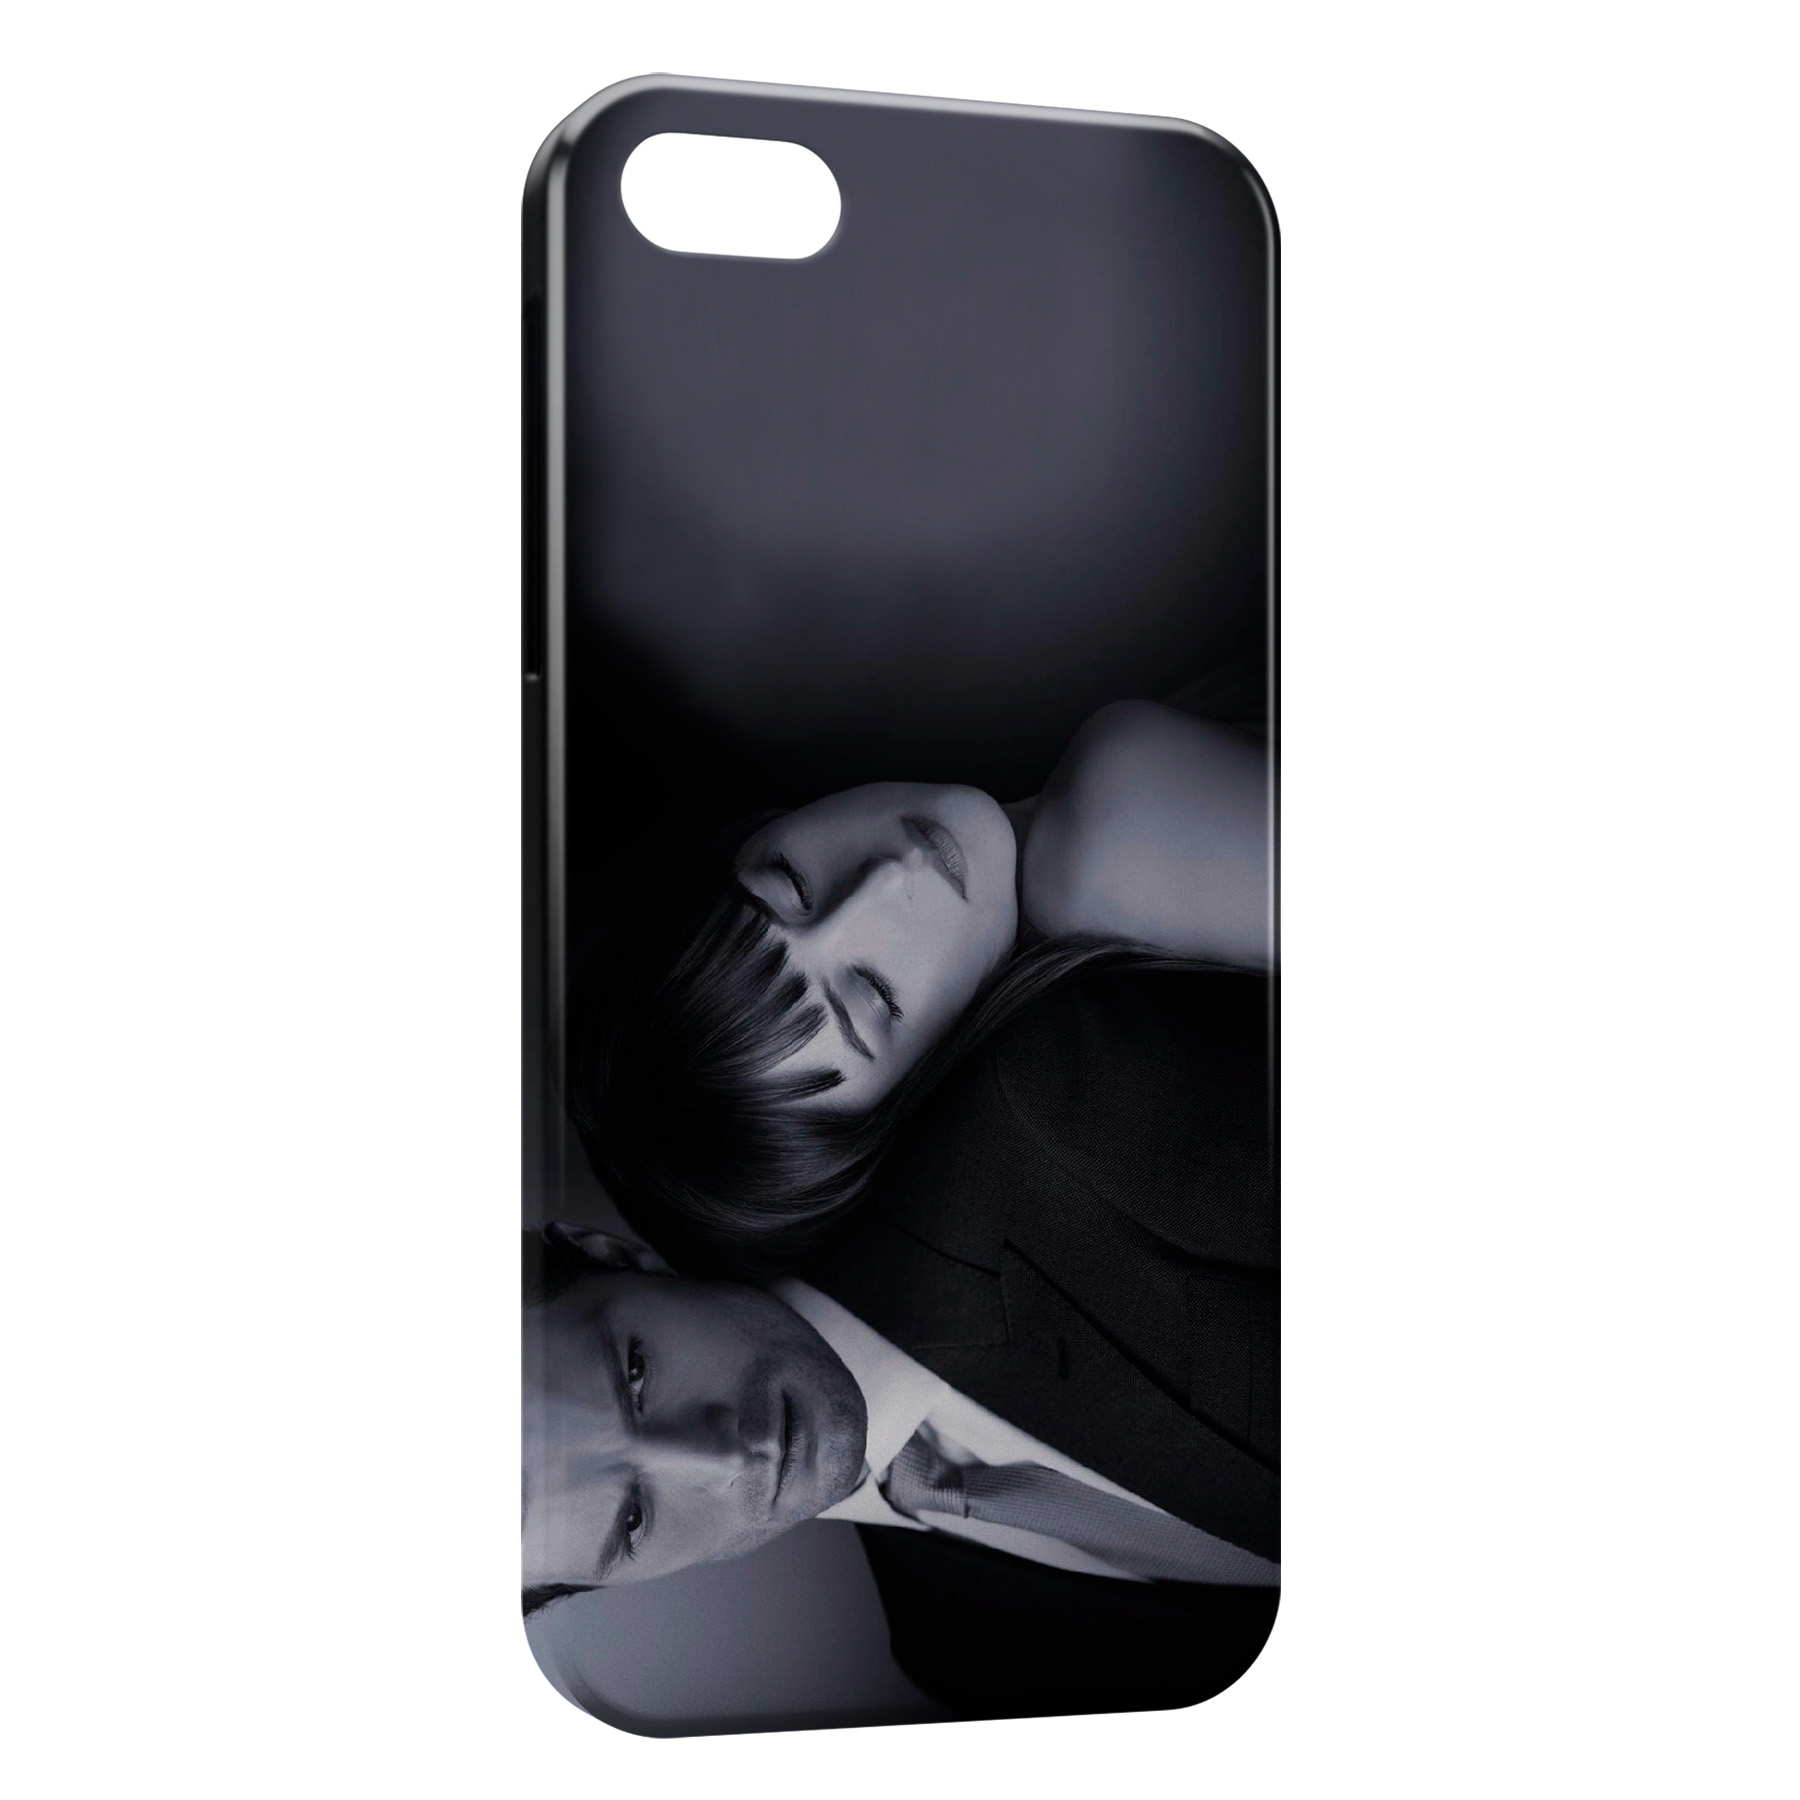 coque iphone 4 50 nuance de grey